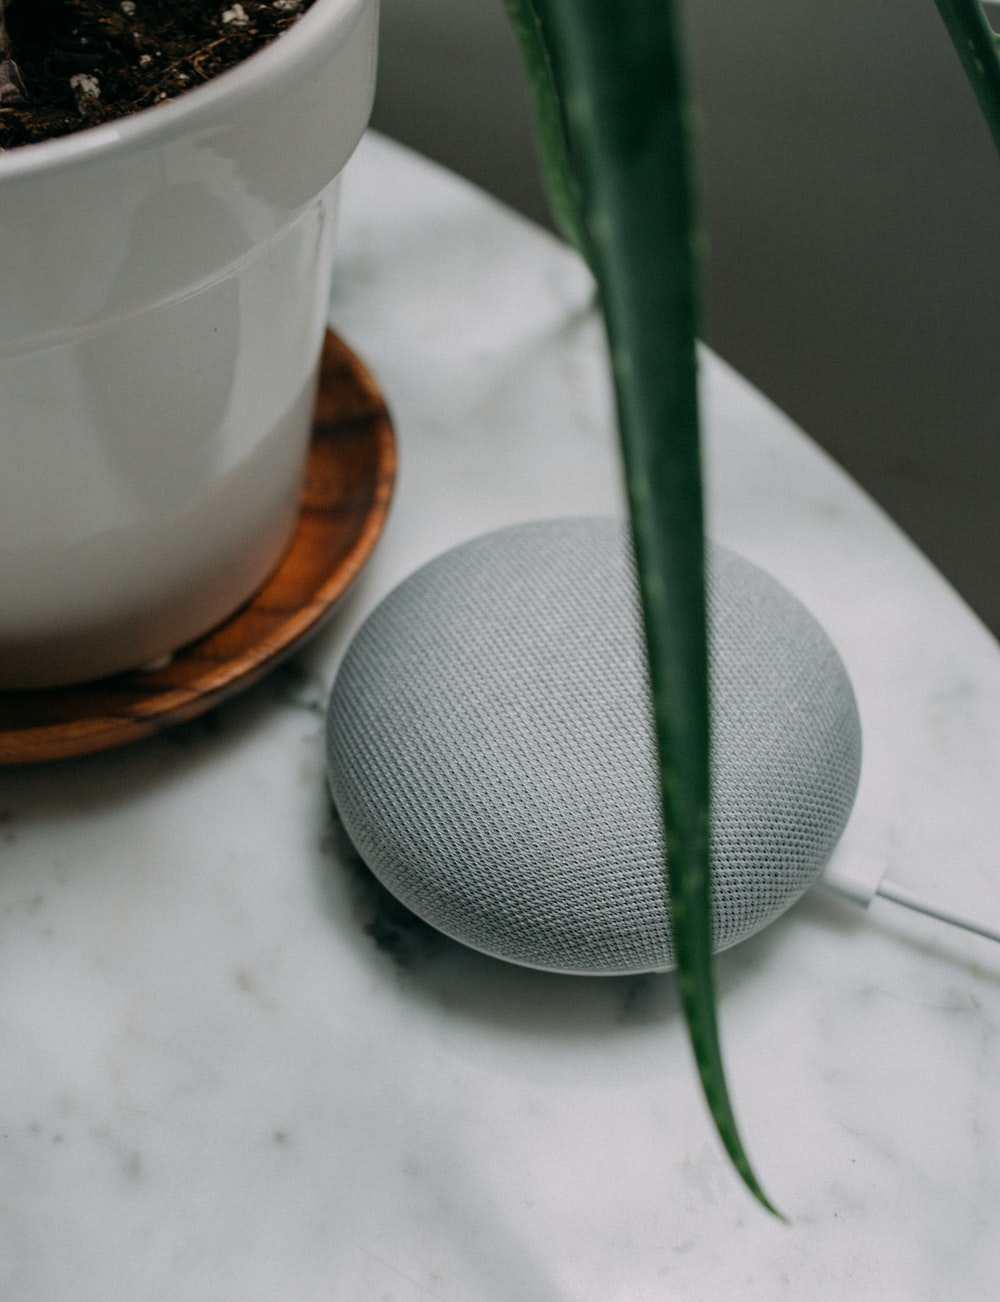 chalk Google Home Mini speaker near plant pot on white surface